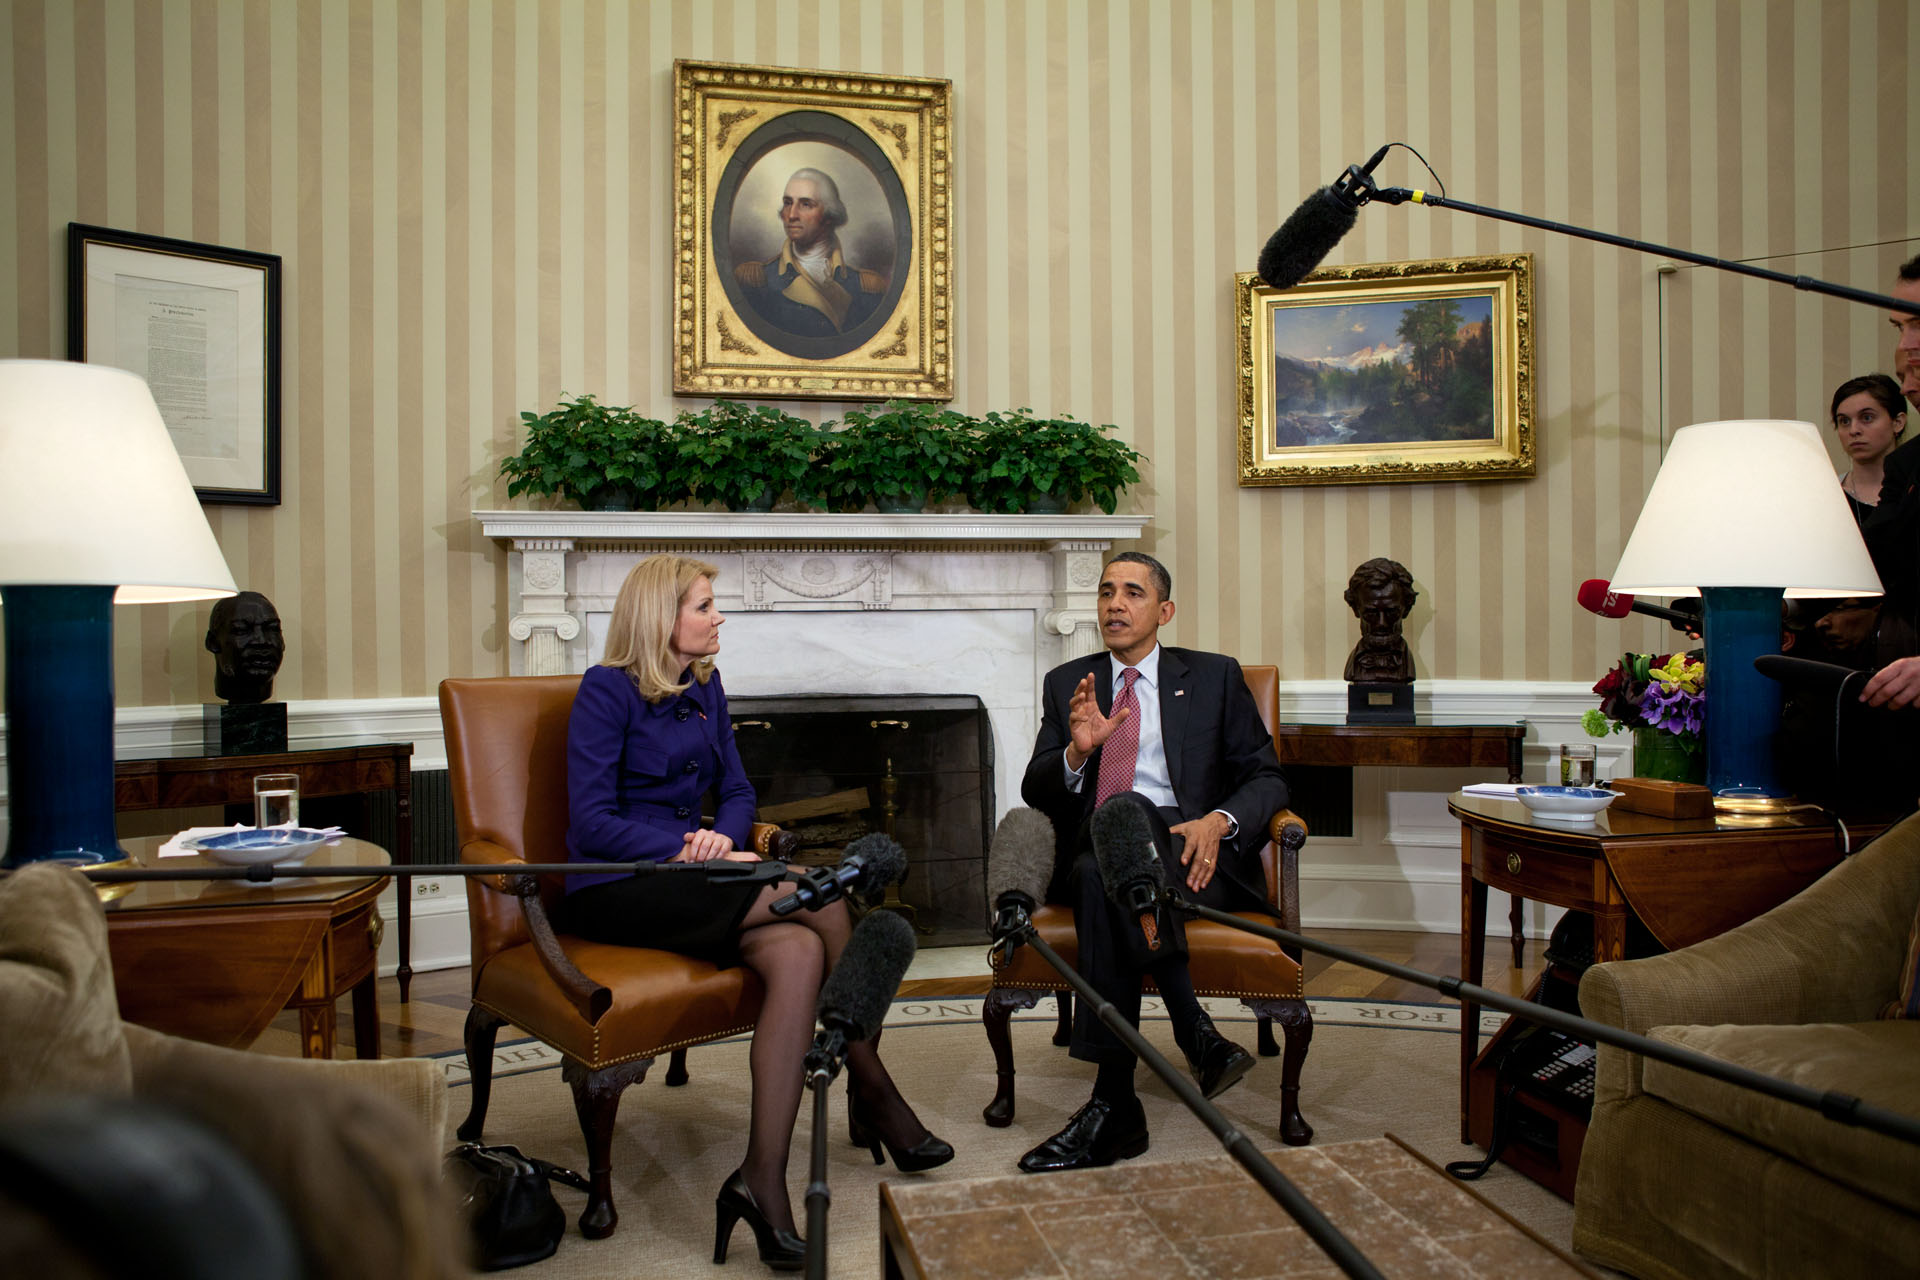 President Barack Obama and Prime Minister Helle Thorning-Schmidt of Denmark (February 24, 2012)